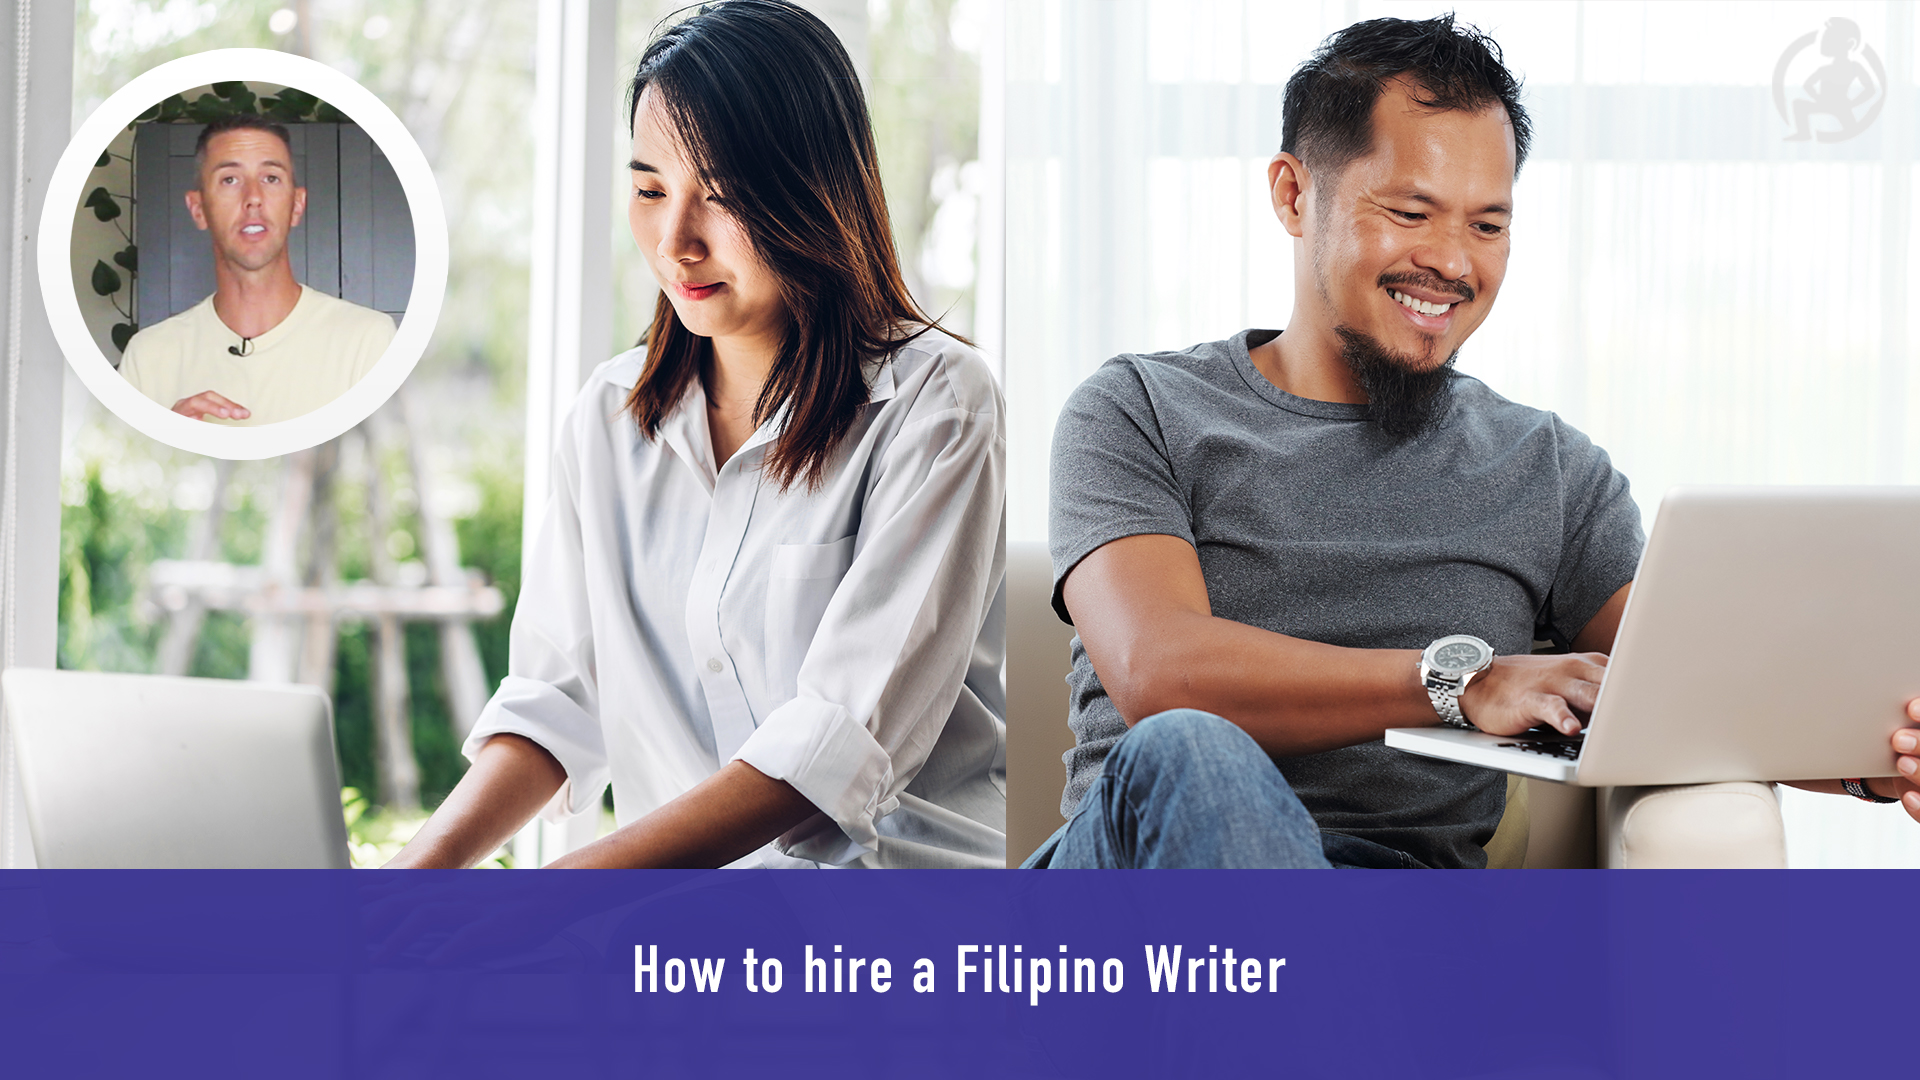 How to Hire Filipino Writer